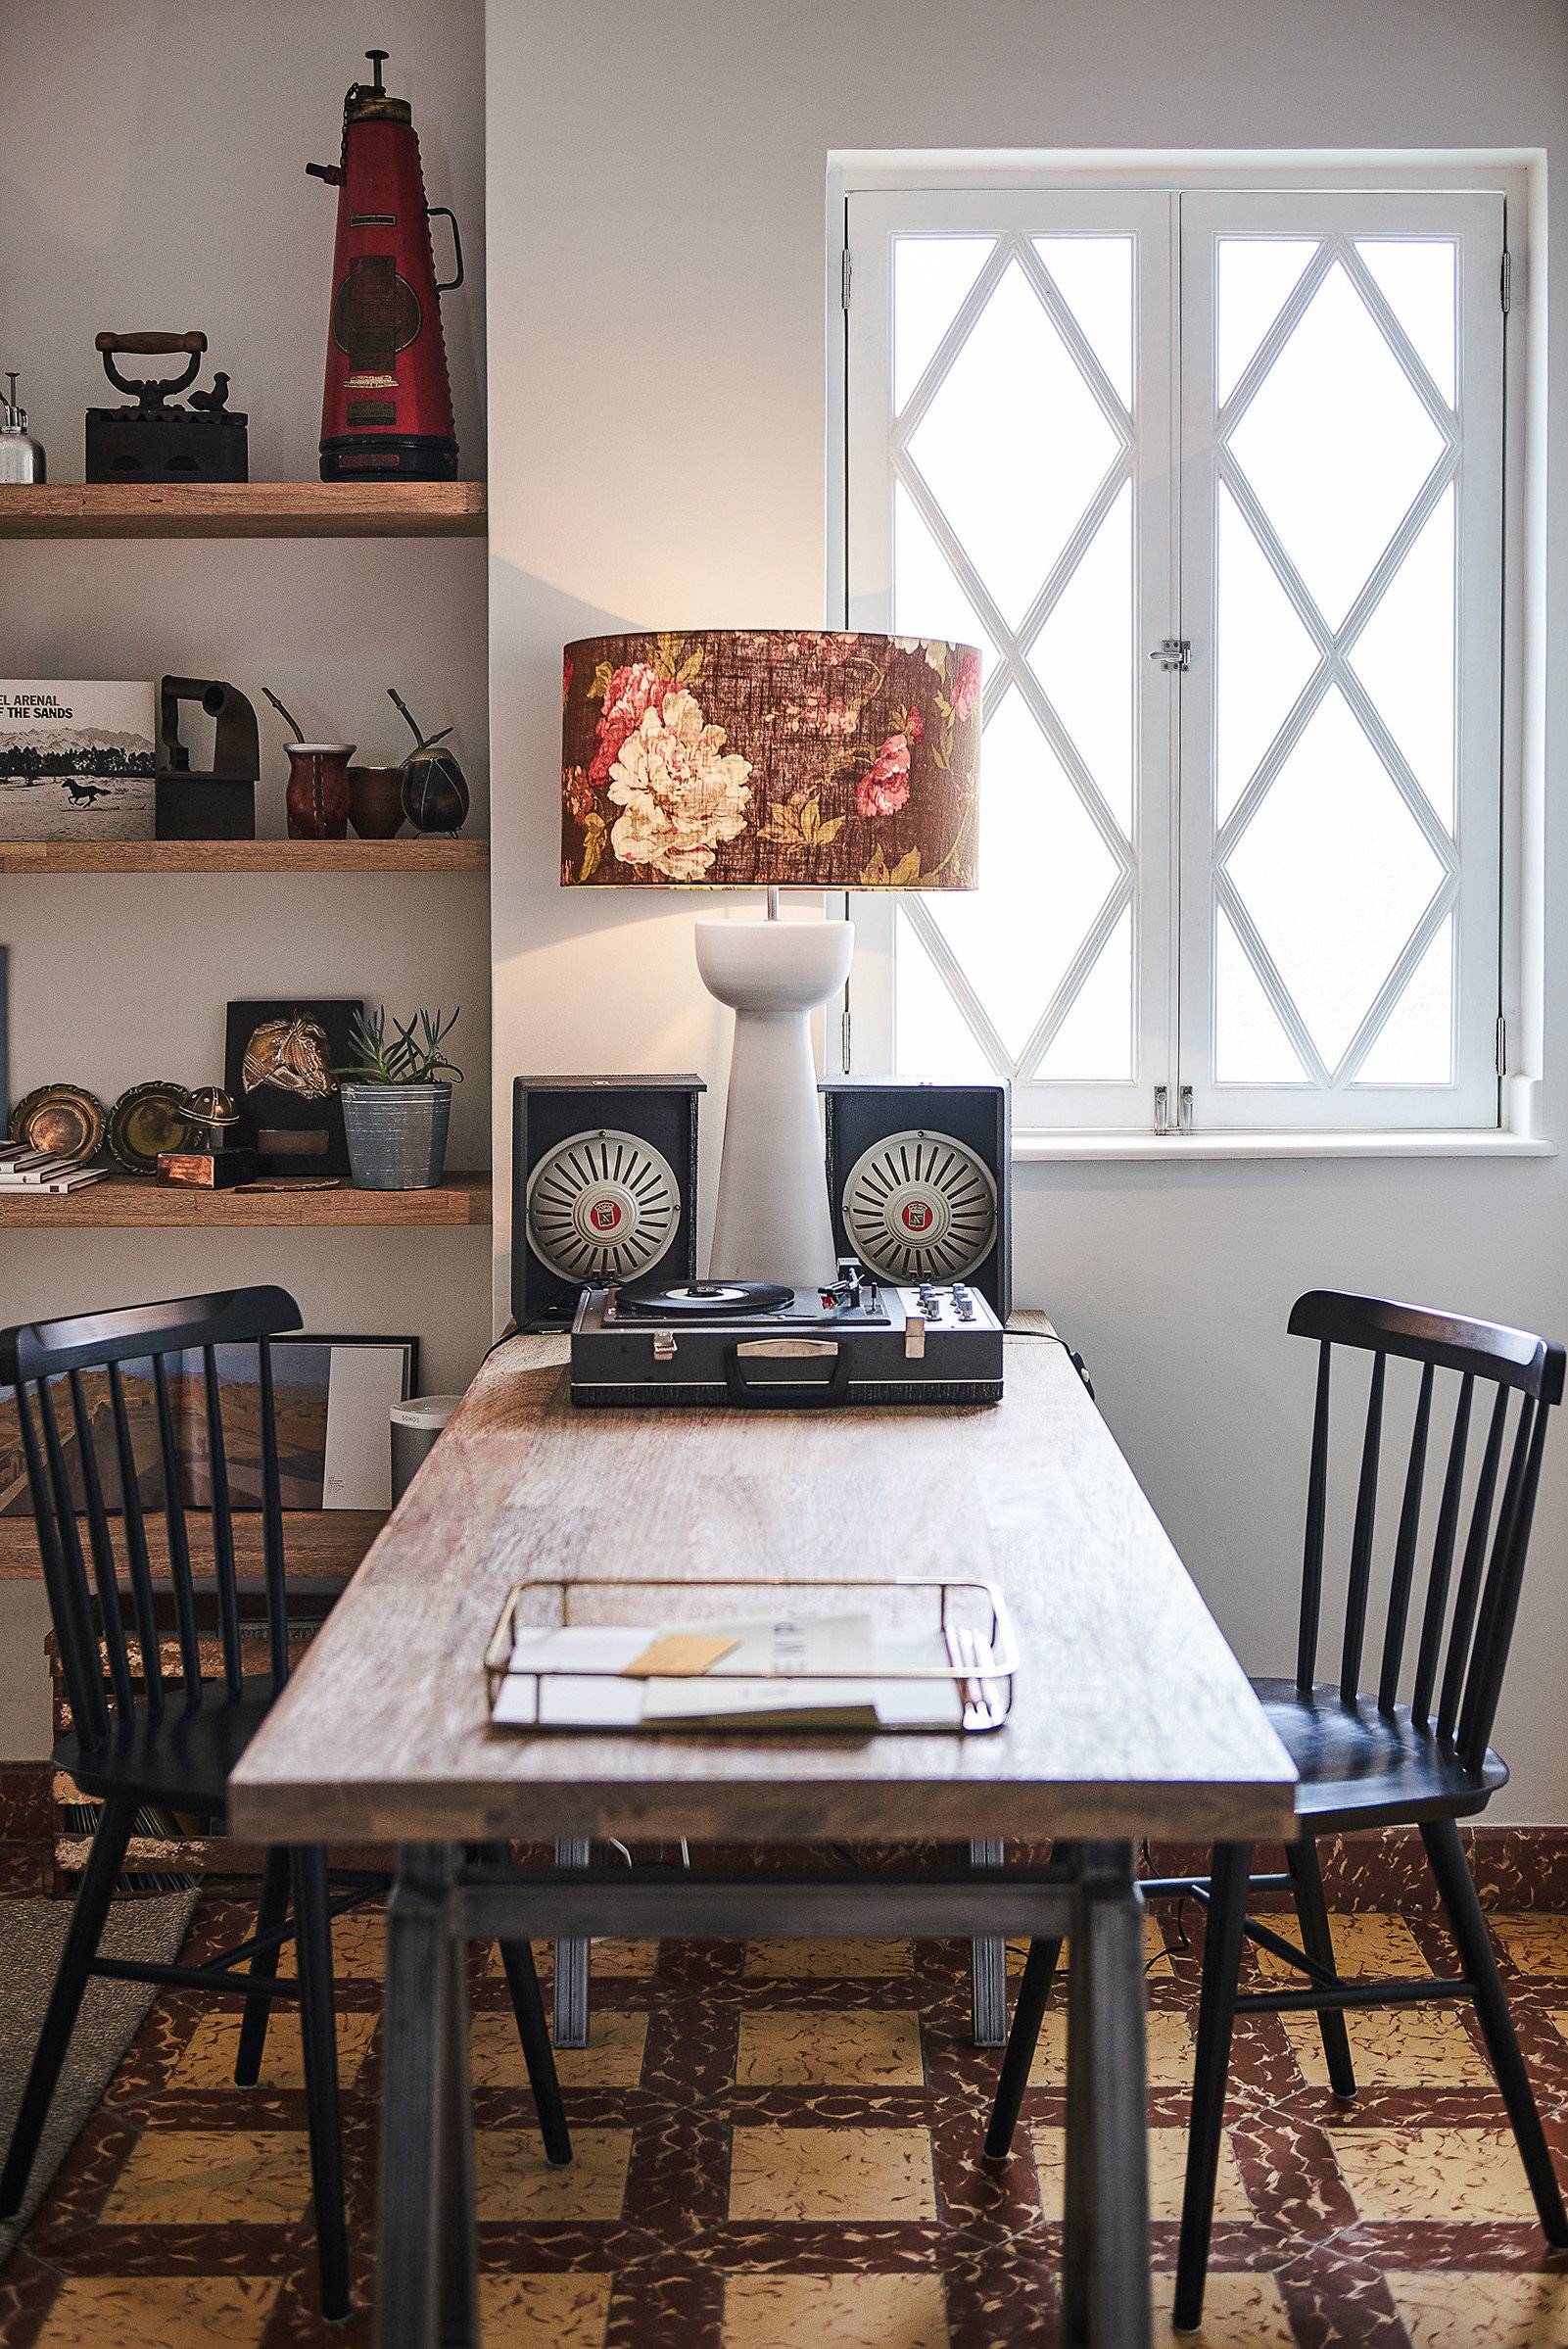 Boutique Hotels Hotels table wall furniture indoor room living room home dining room interior design chair window house coffee table